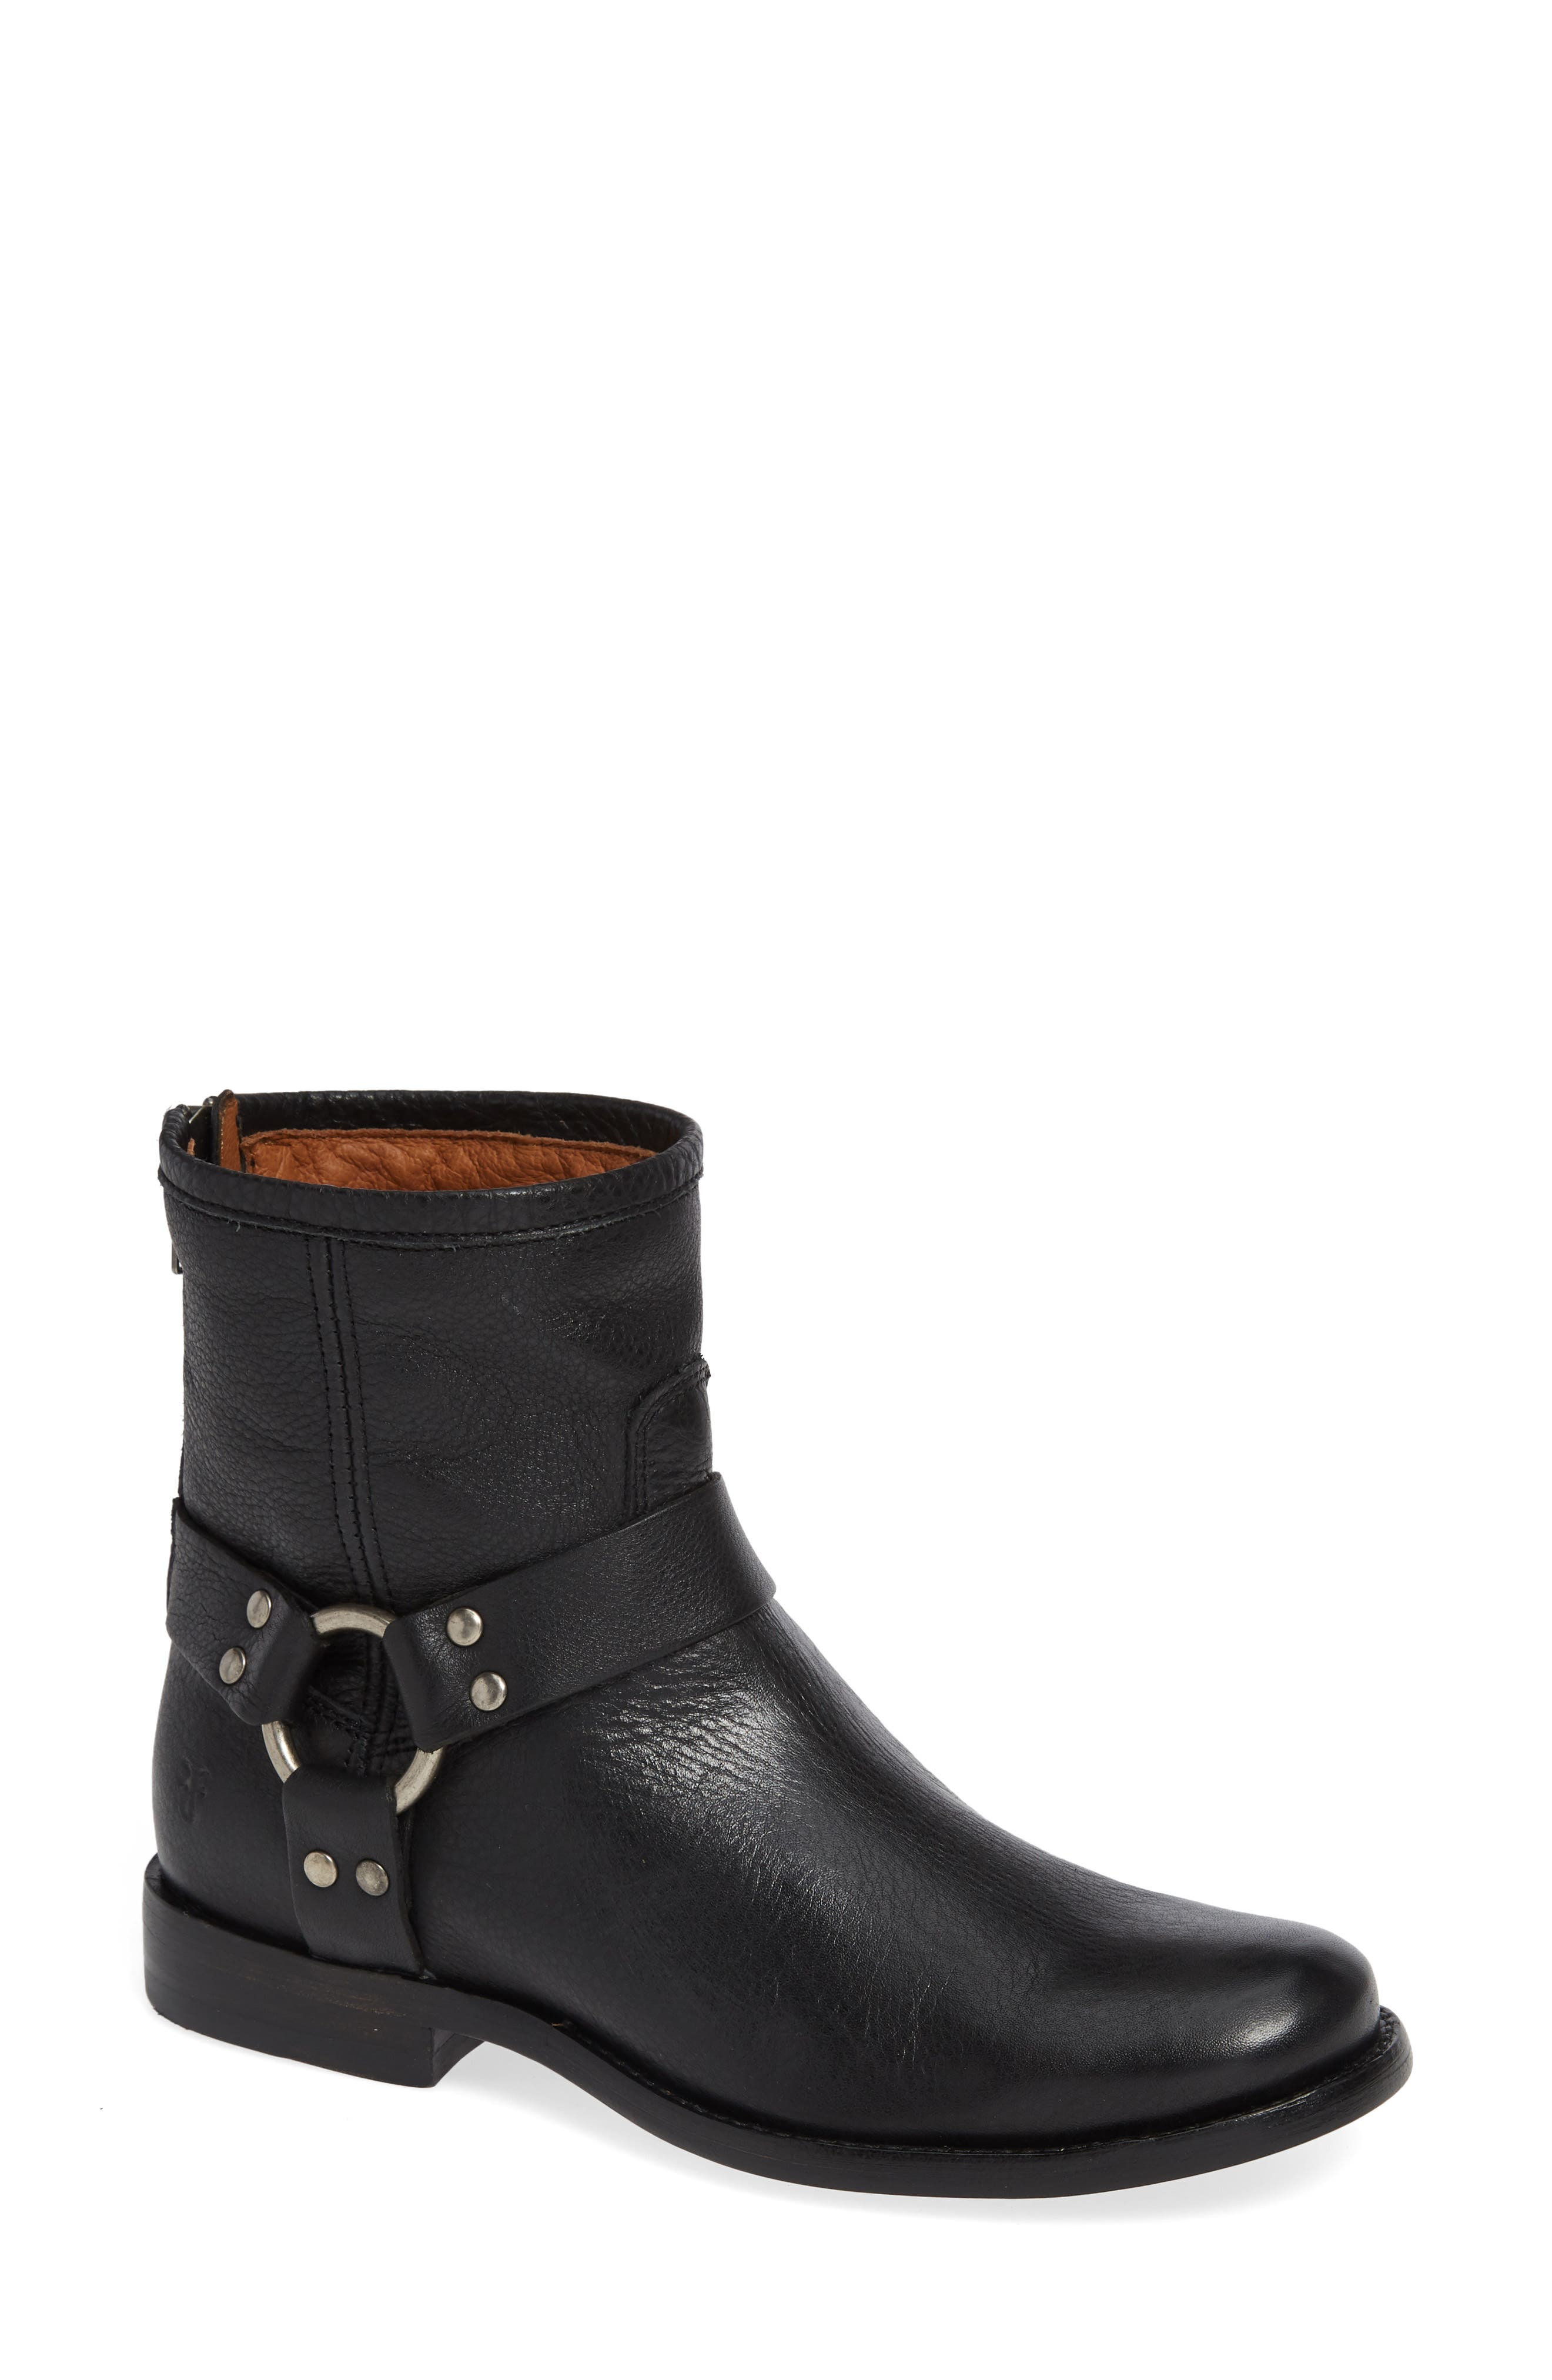 'Phillip' Harness Boot, Main, color, 002